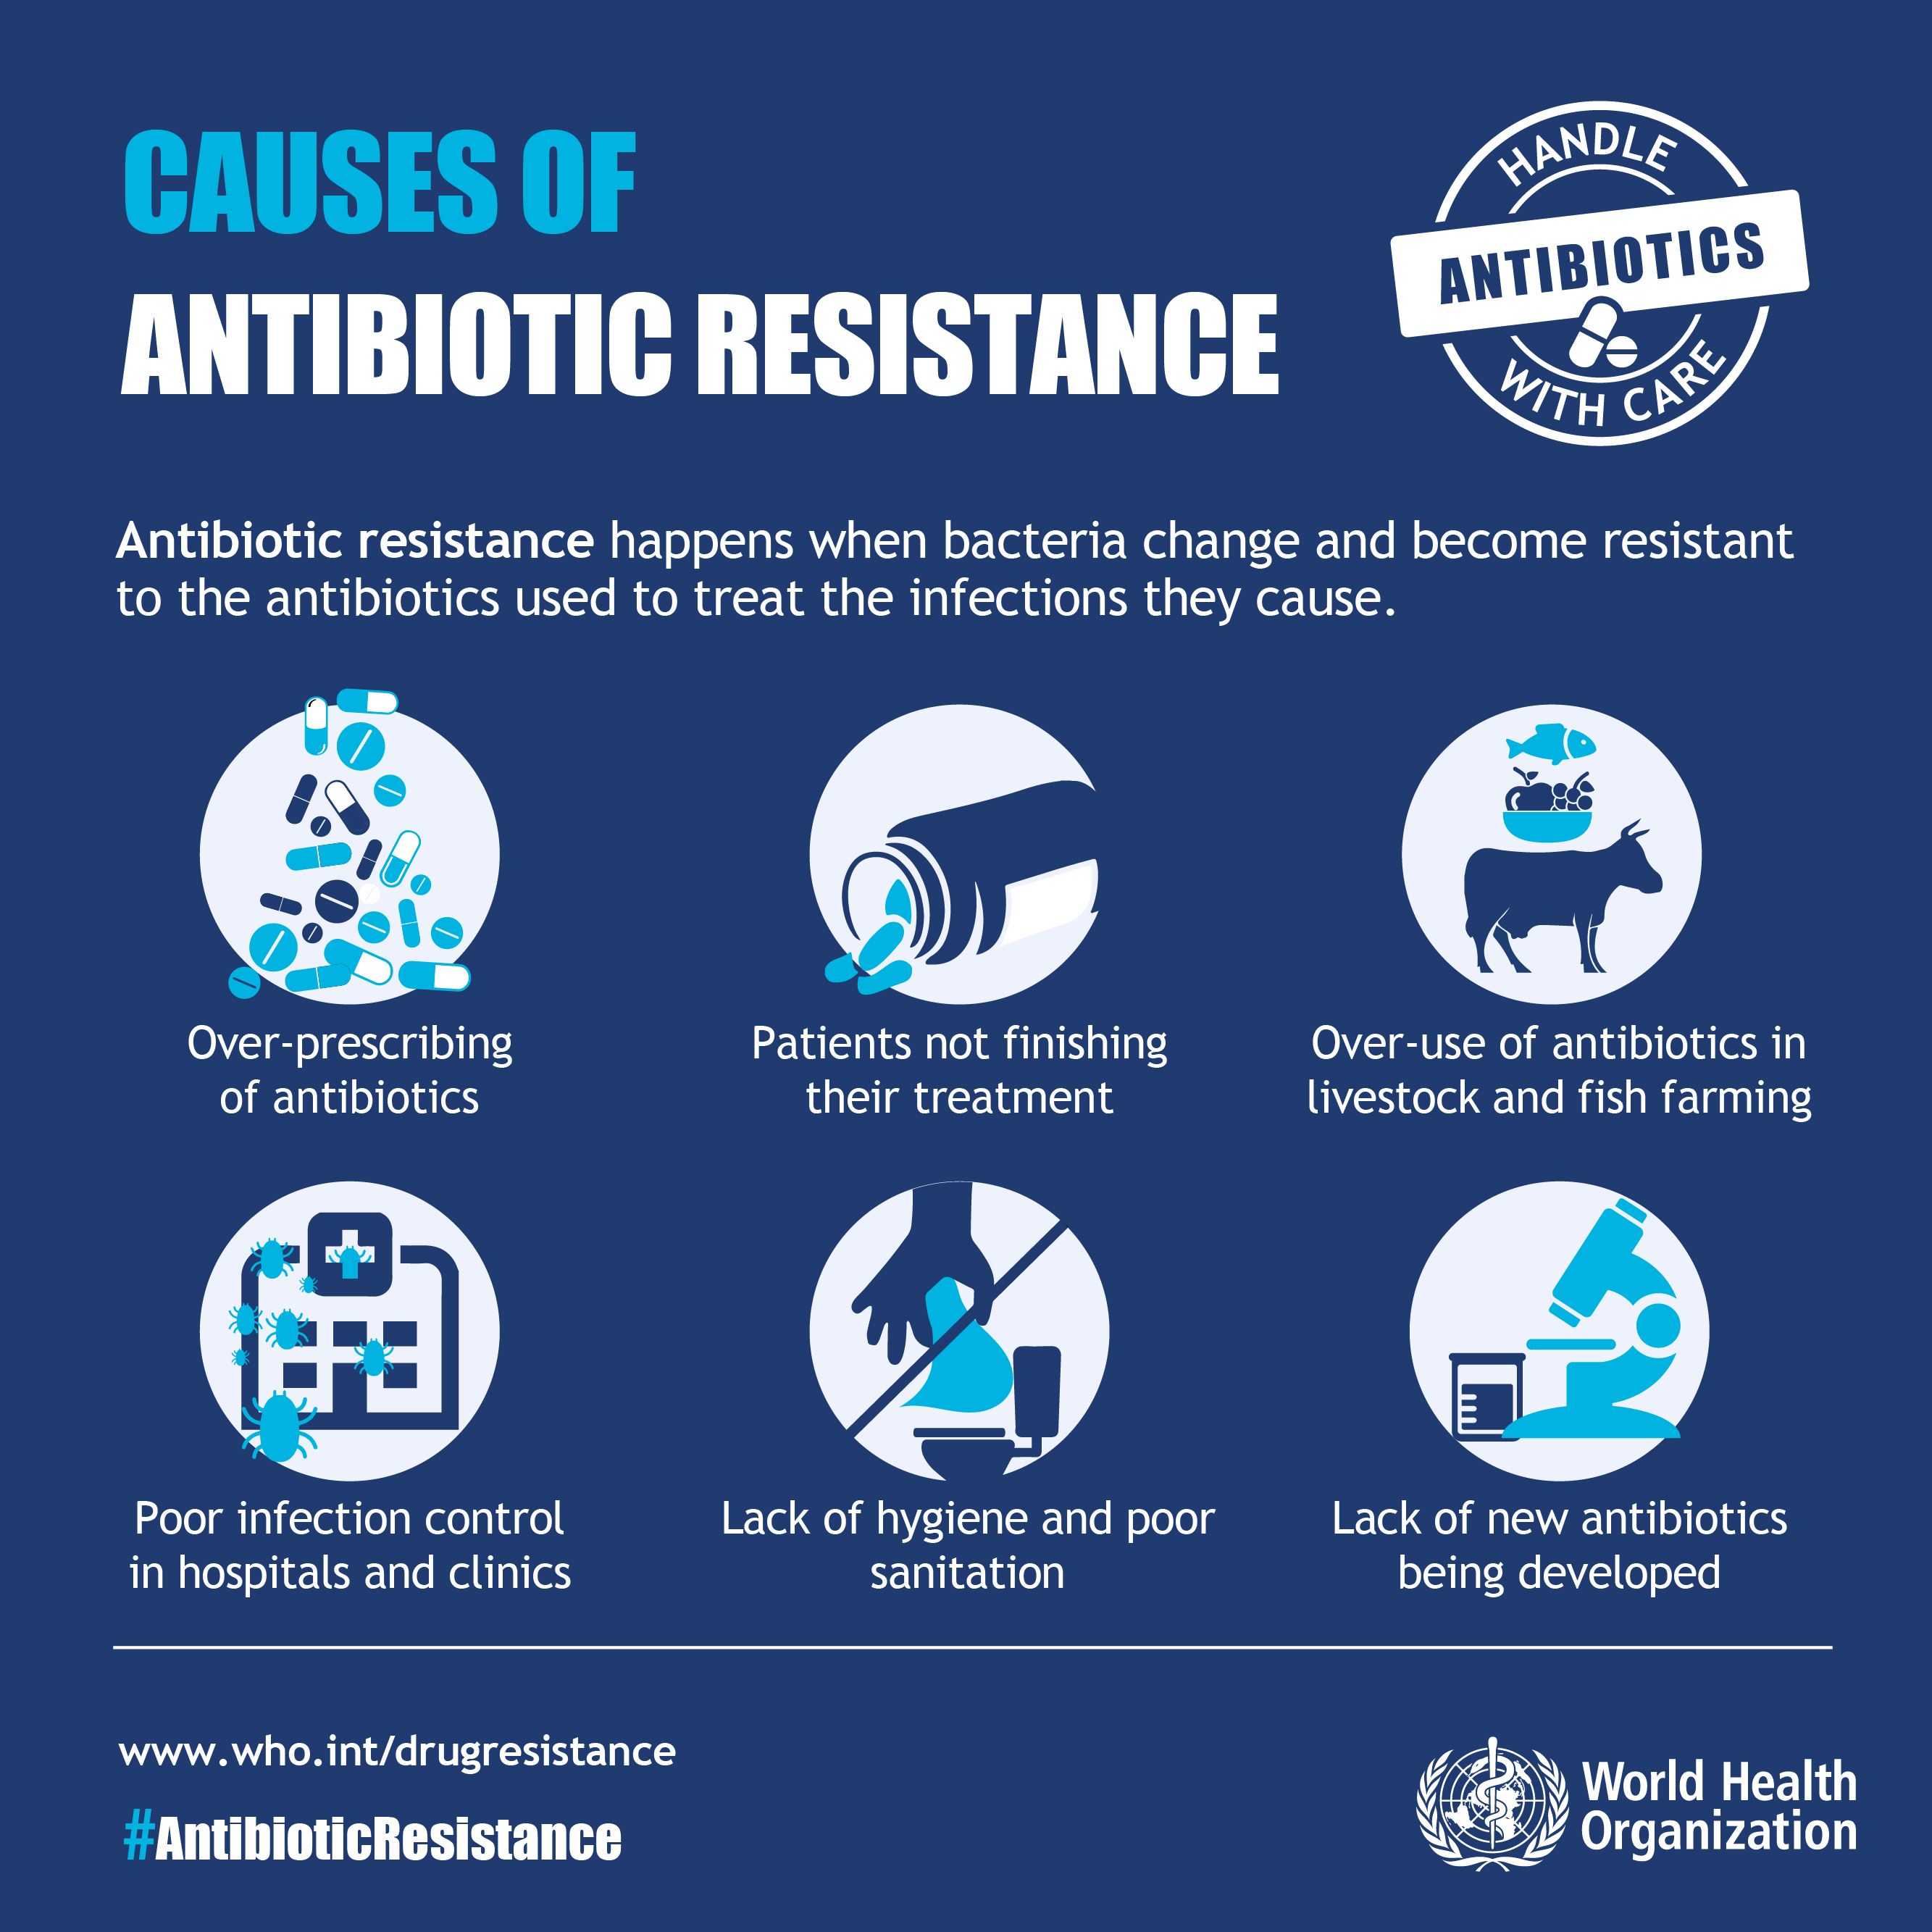 """WHO"" is creating awareness for resistance to antibiotics?"